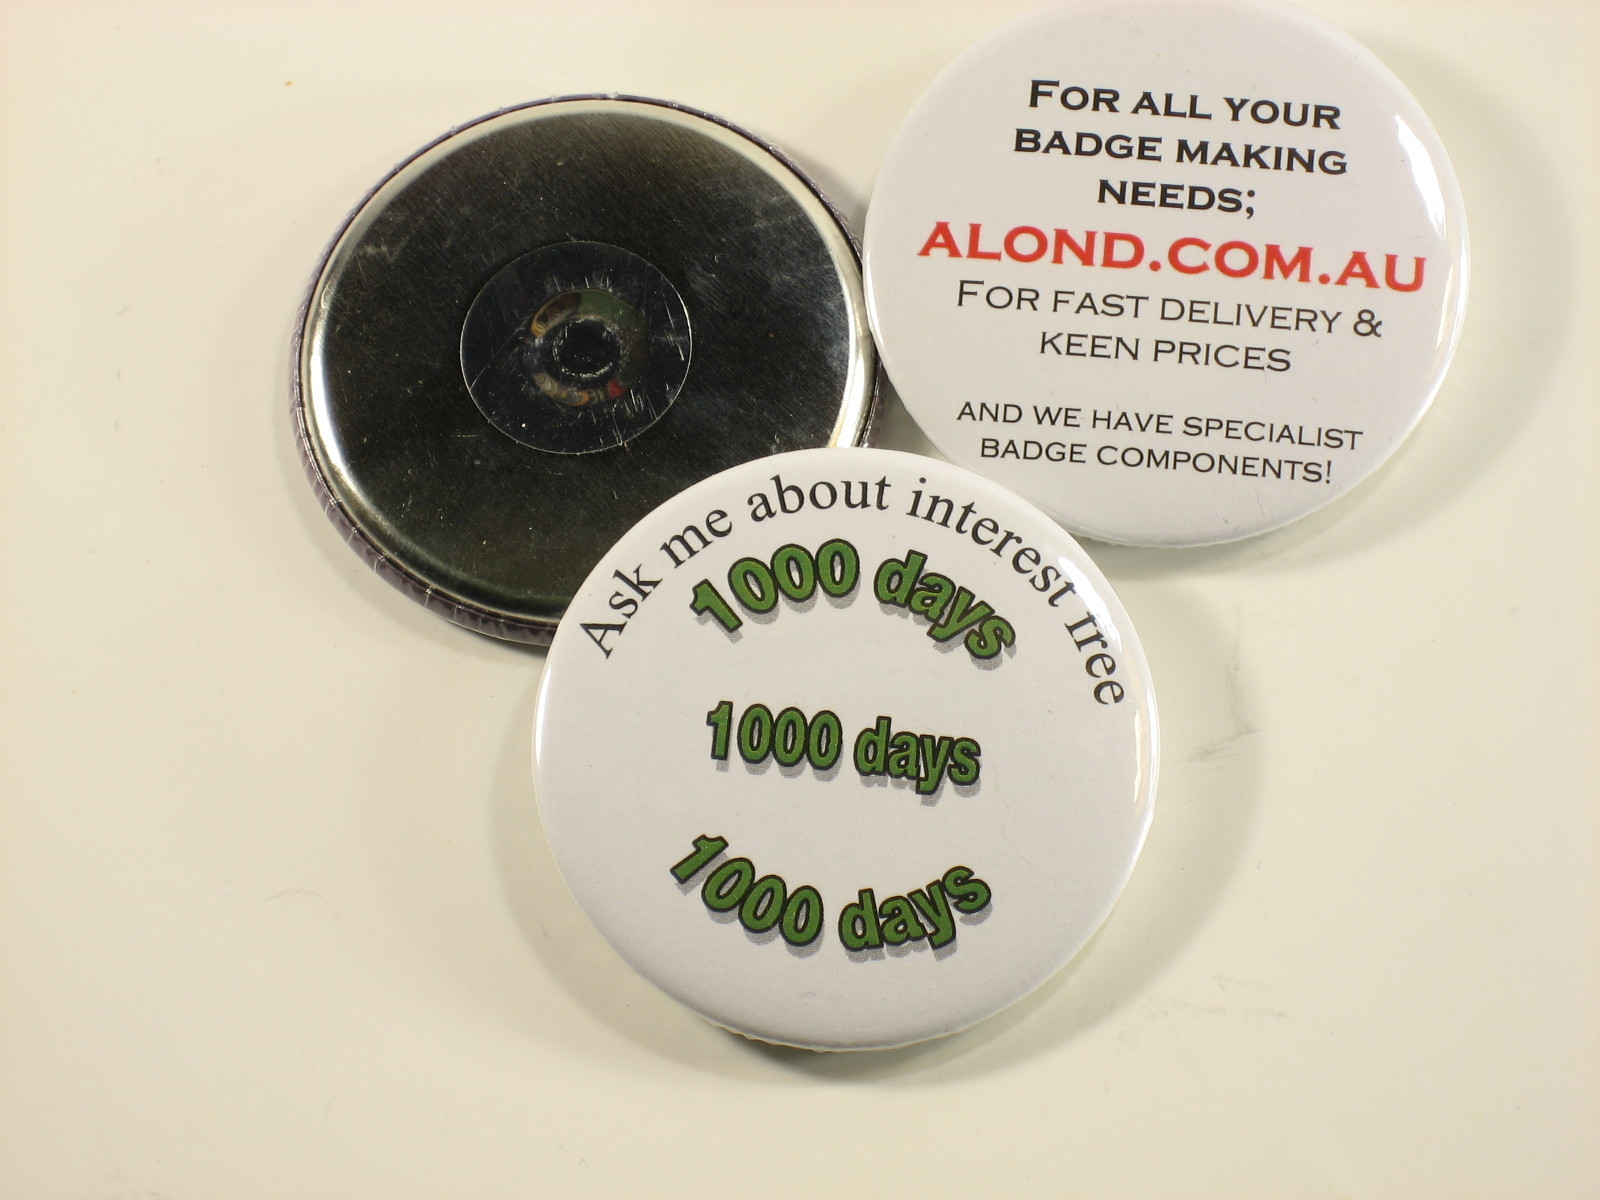 3 inch fridge magnet, otherwise a 75 mm magnet backed badge